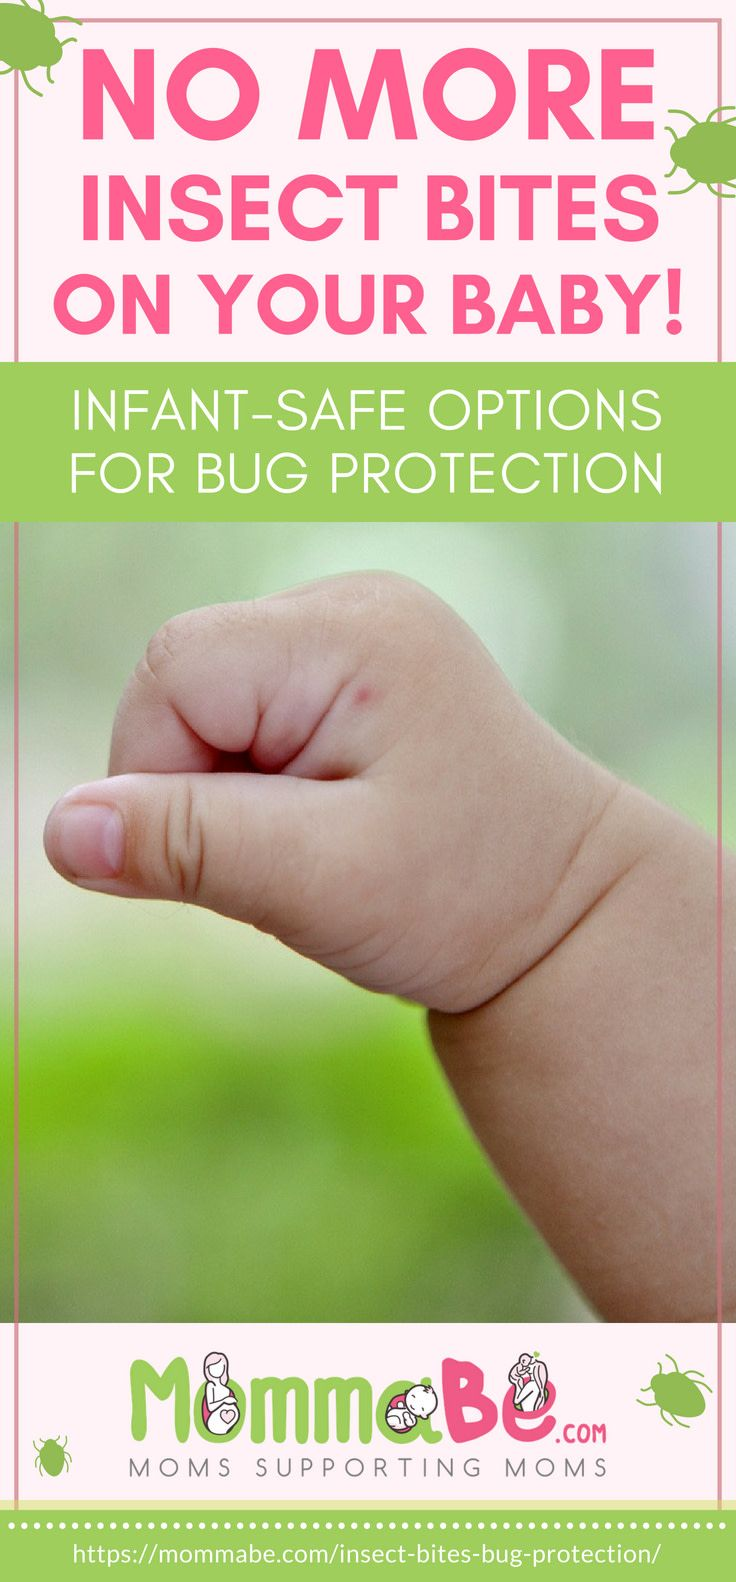 No More Insect Bites! InfantSafe Options For Bug